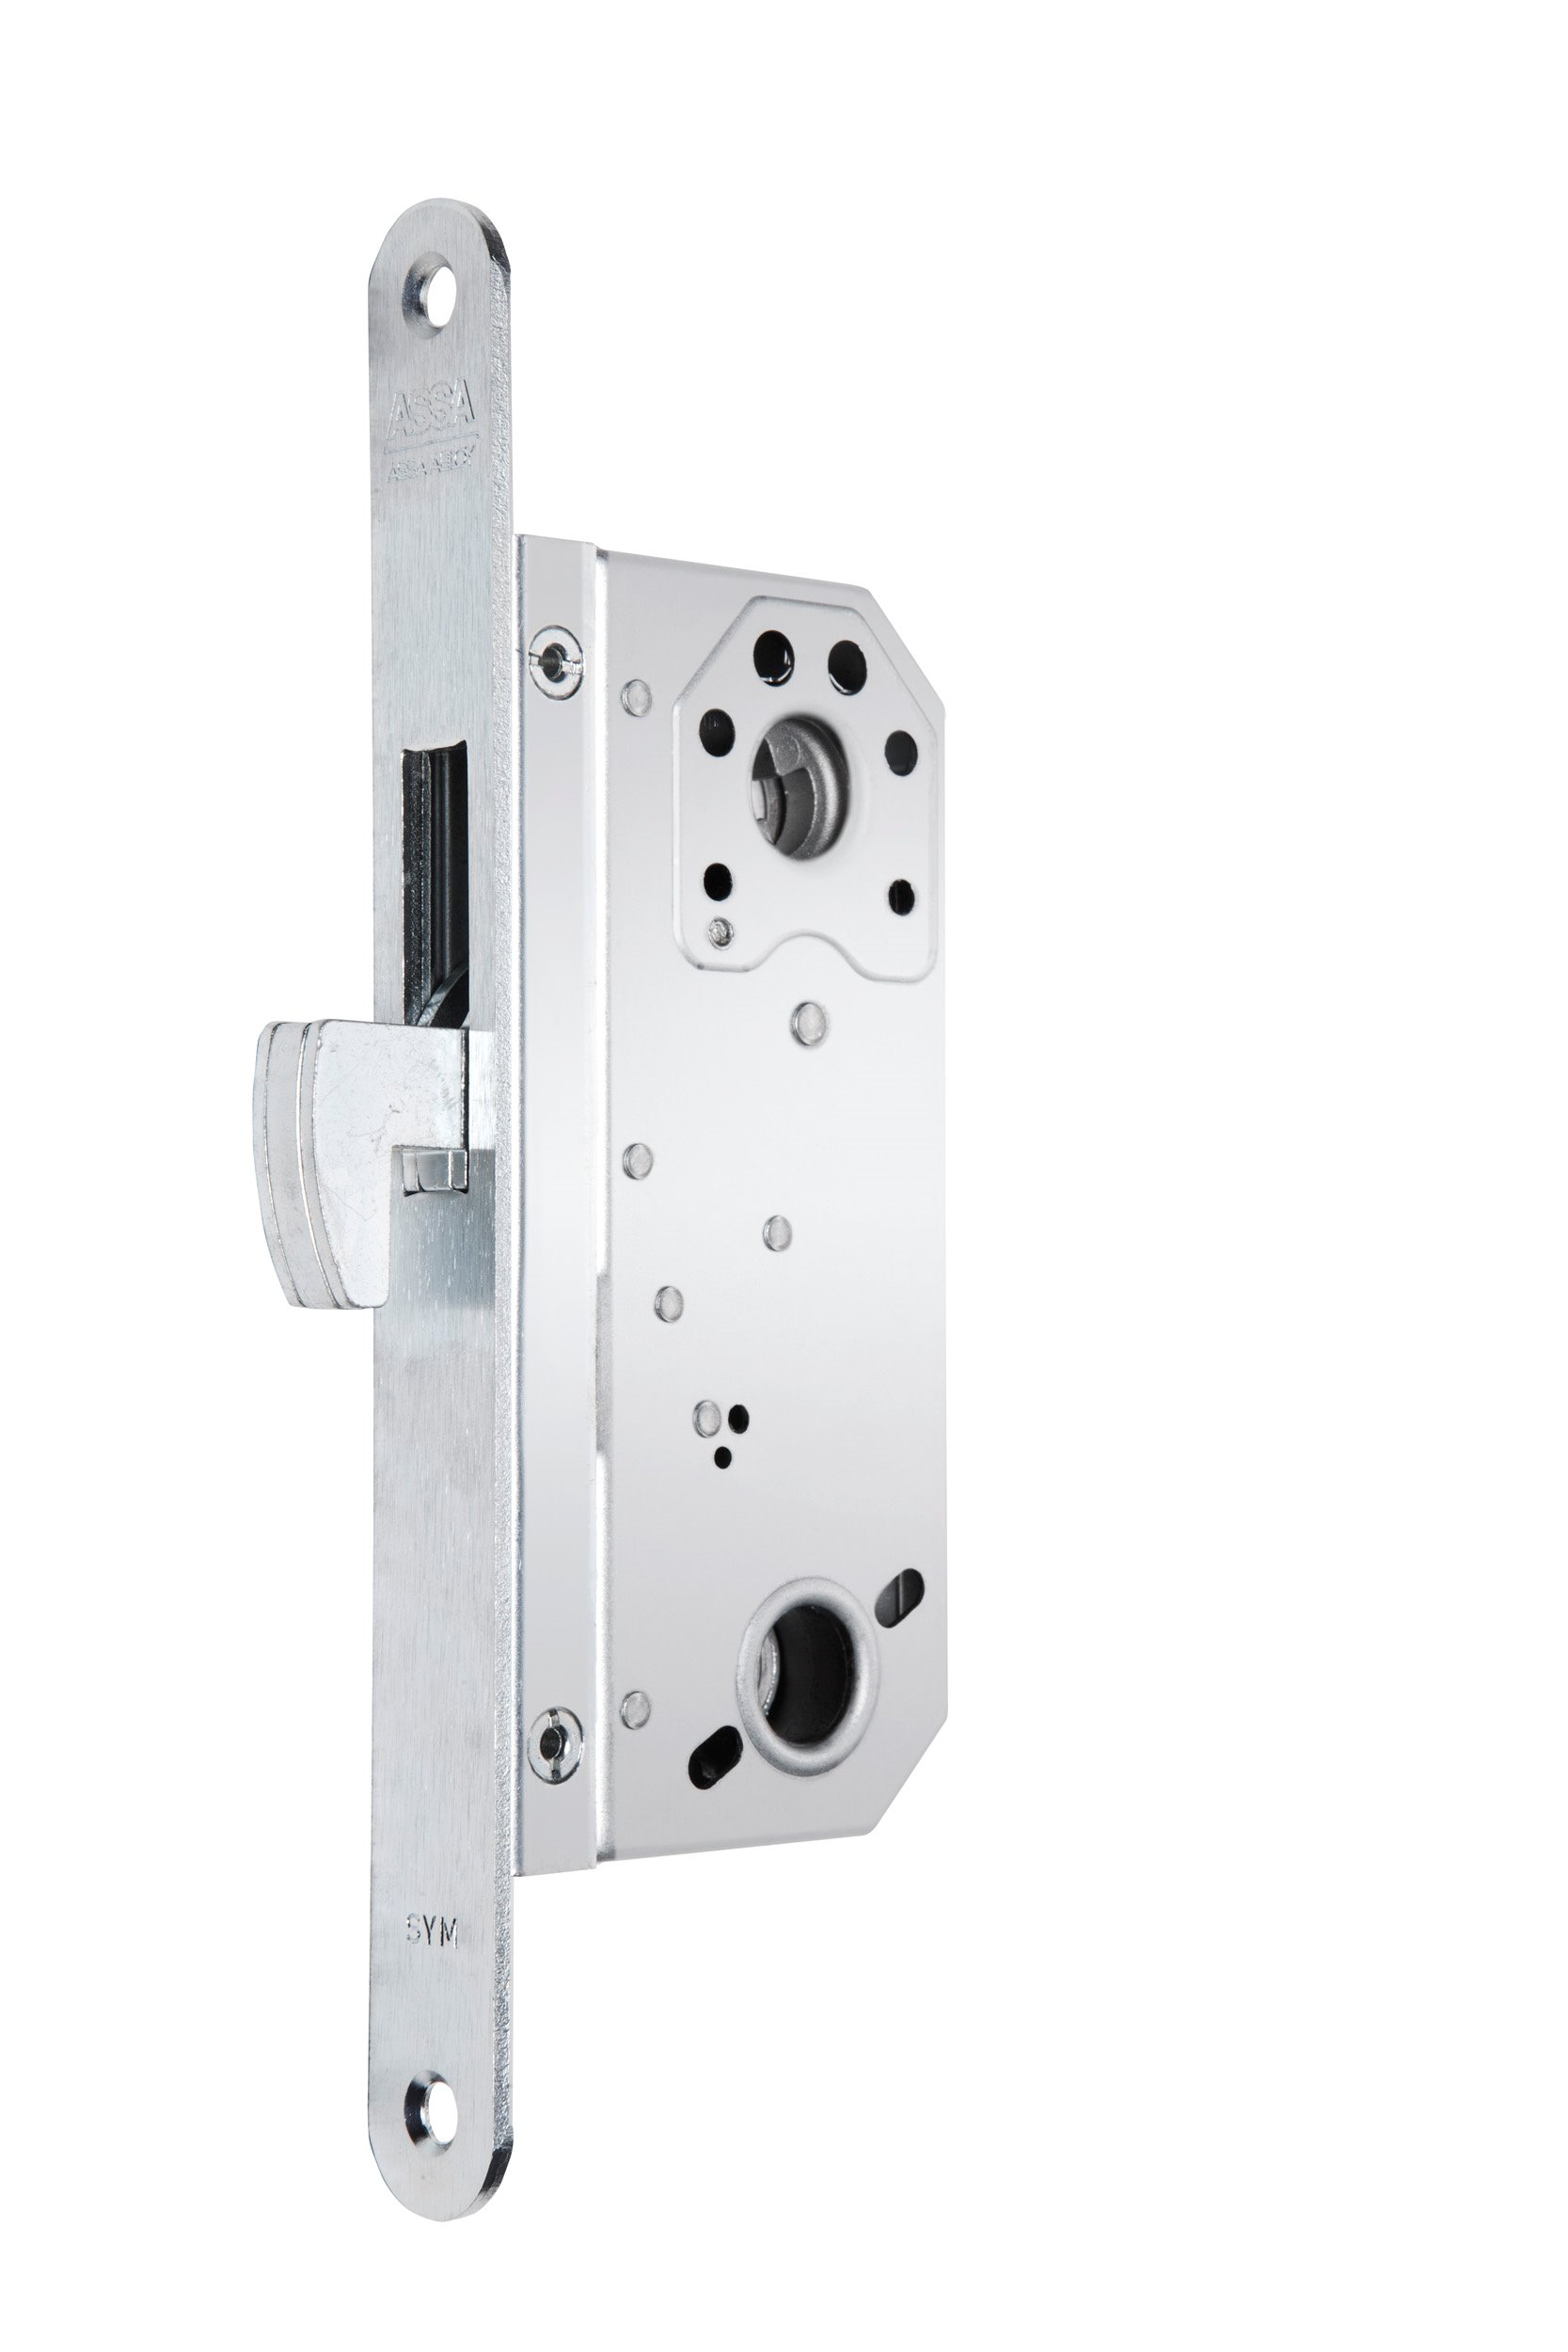 Locks with hook bolt and lever latch